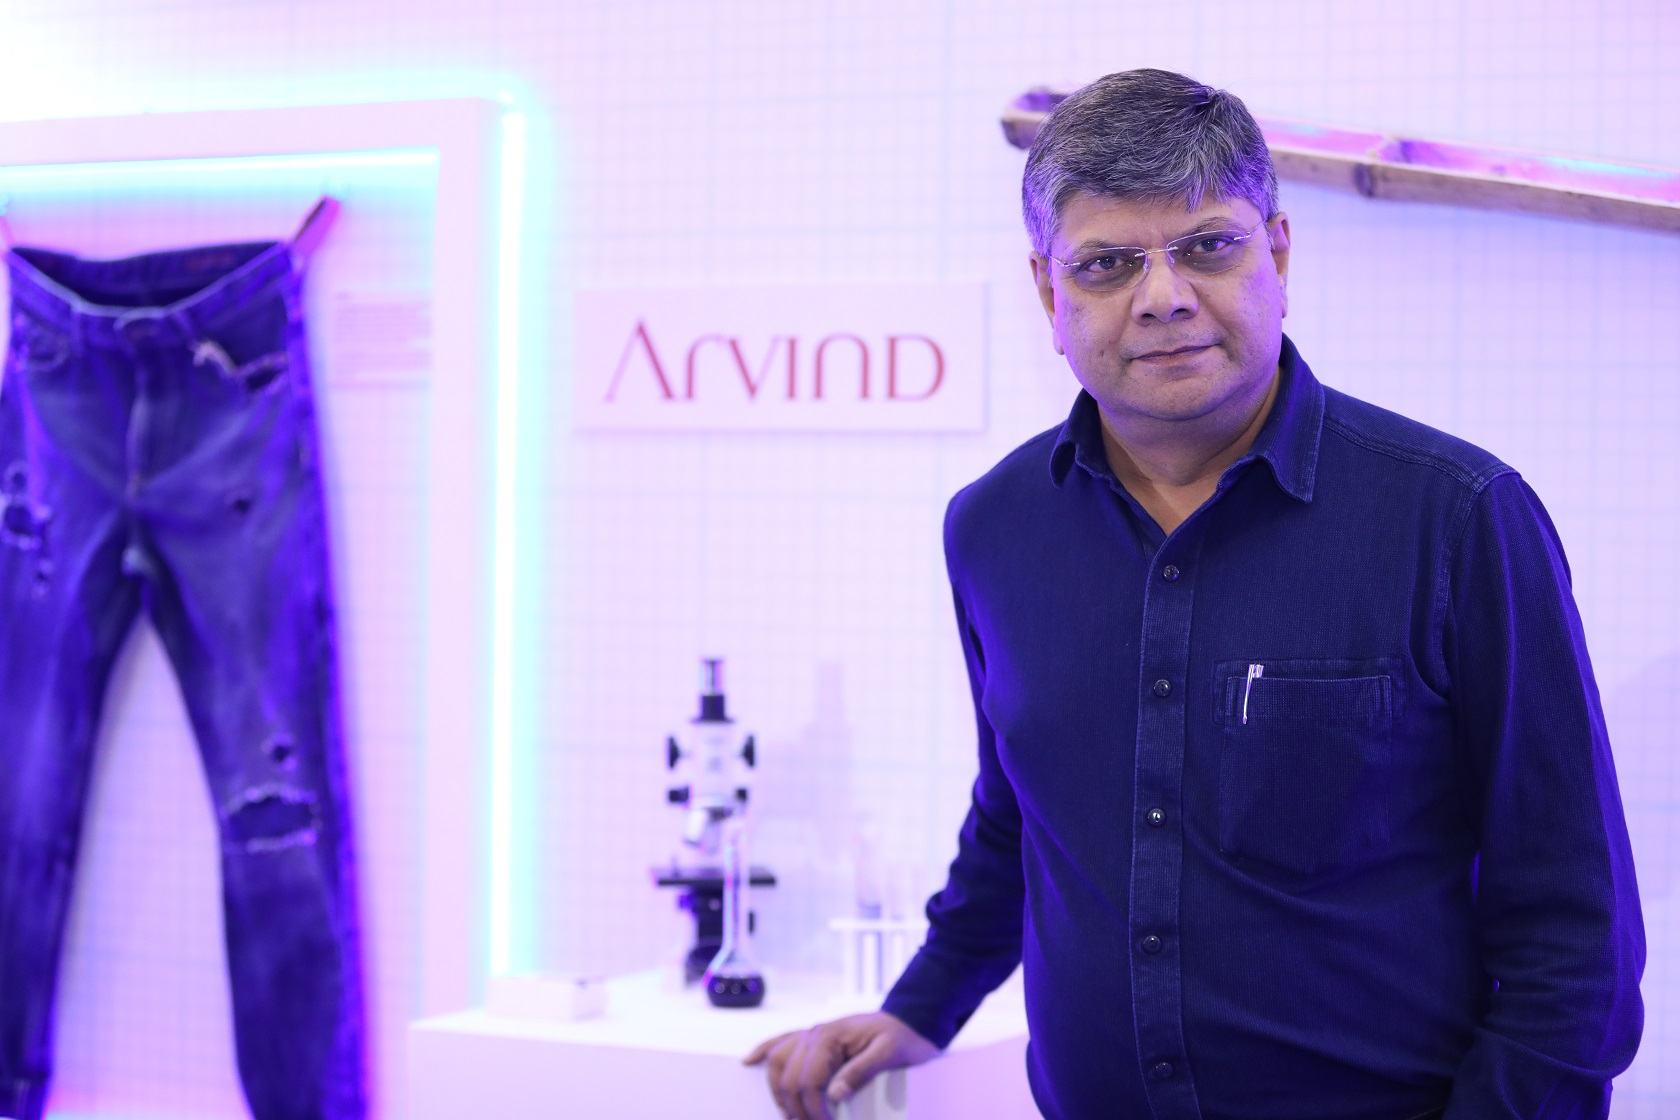 Denim to drive apparel sector growth: Arvind Ltd